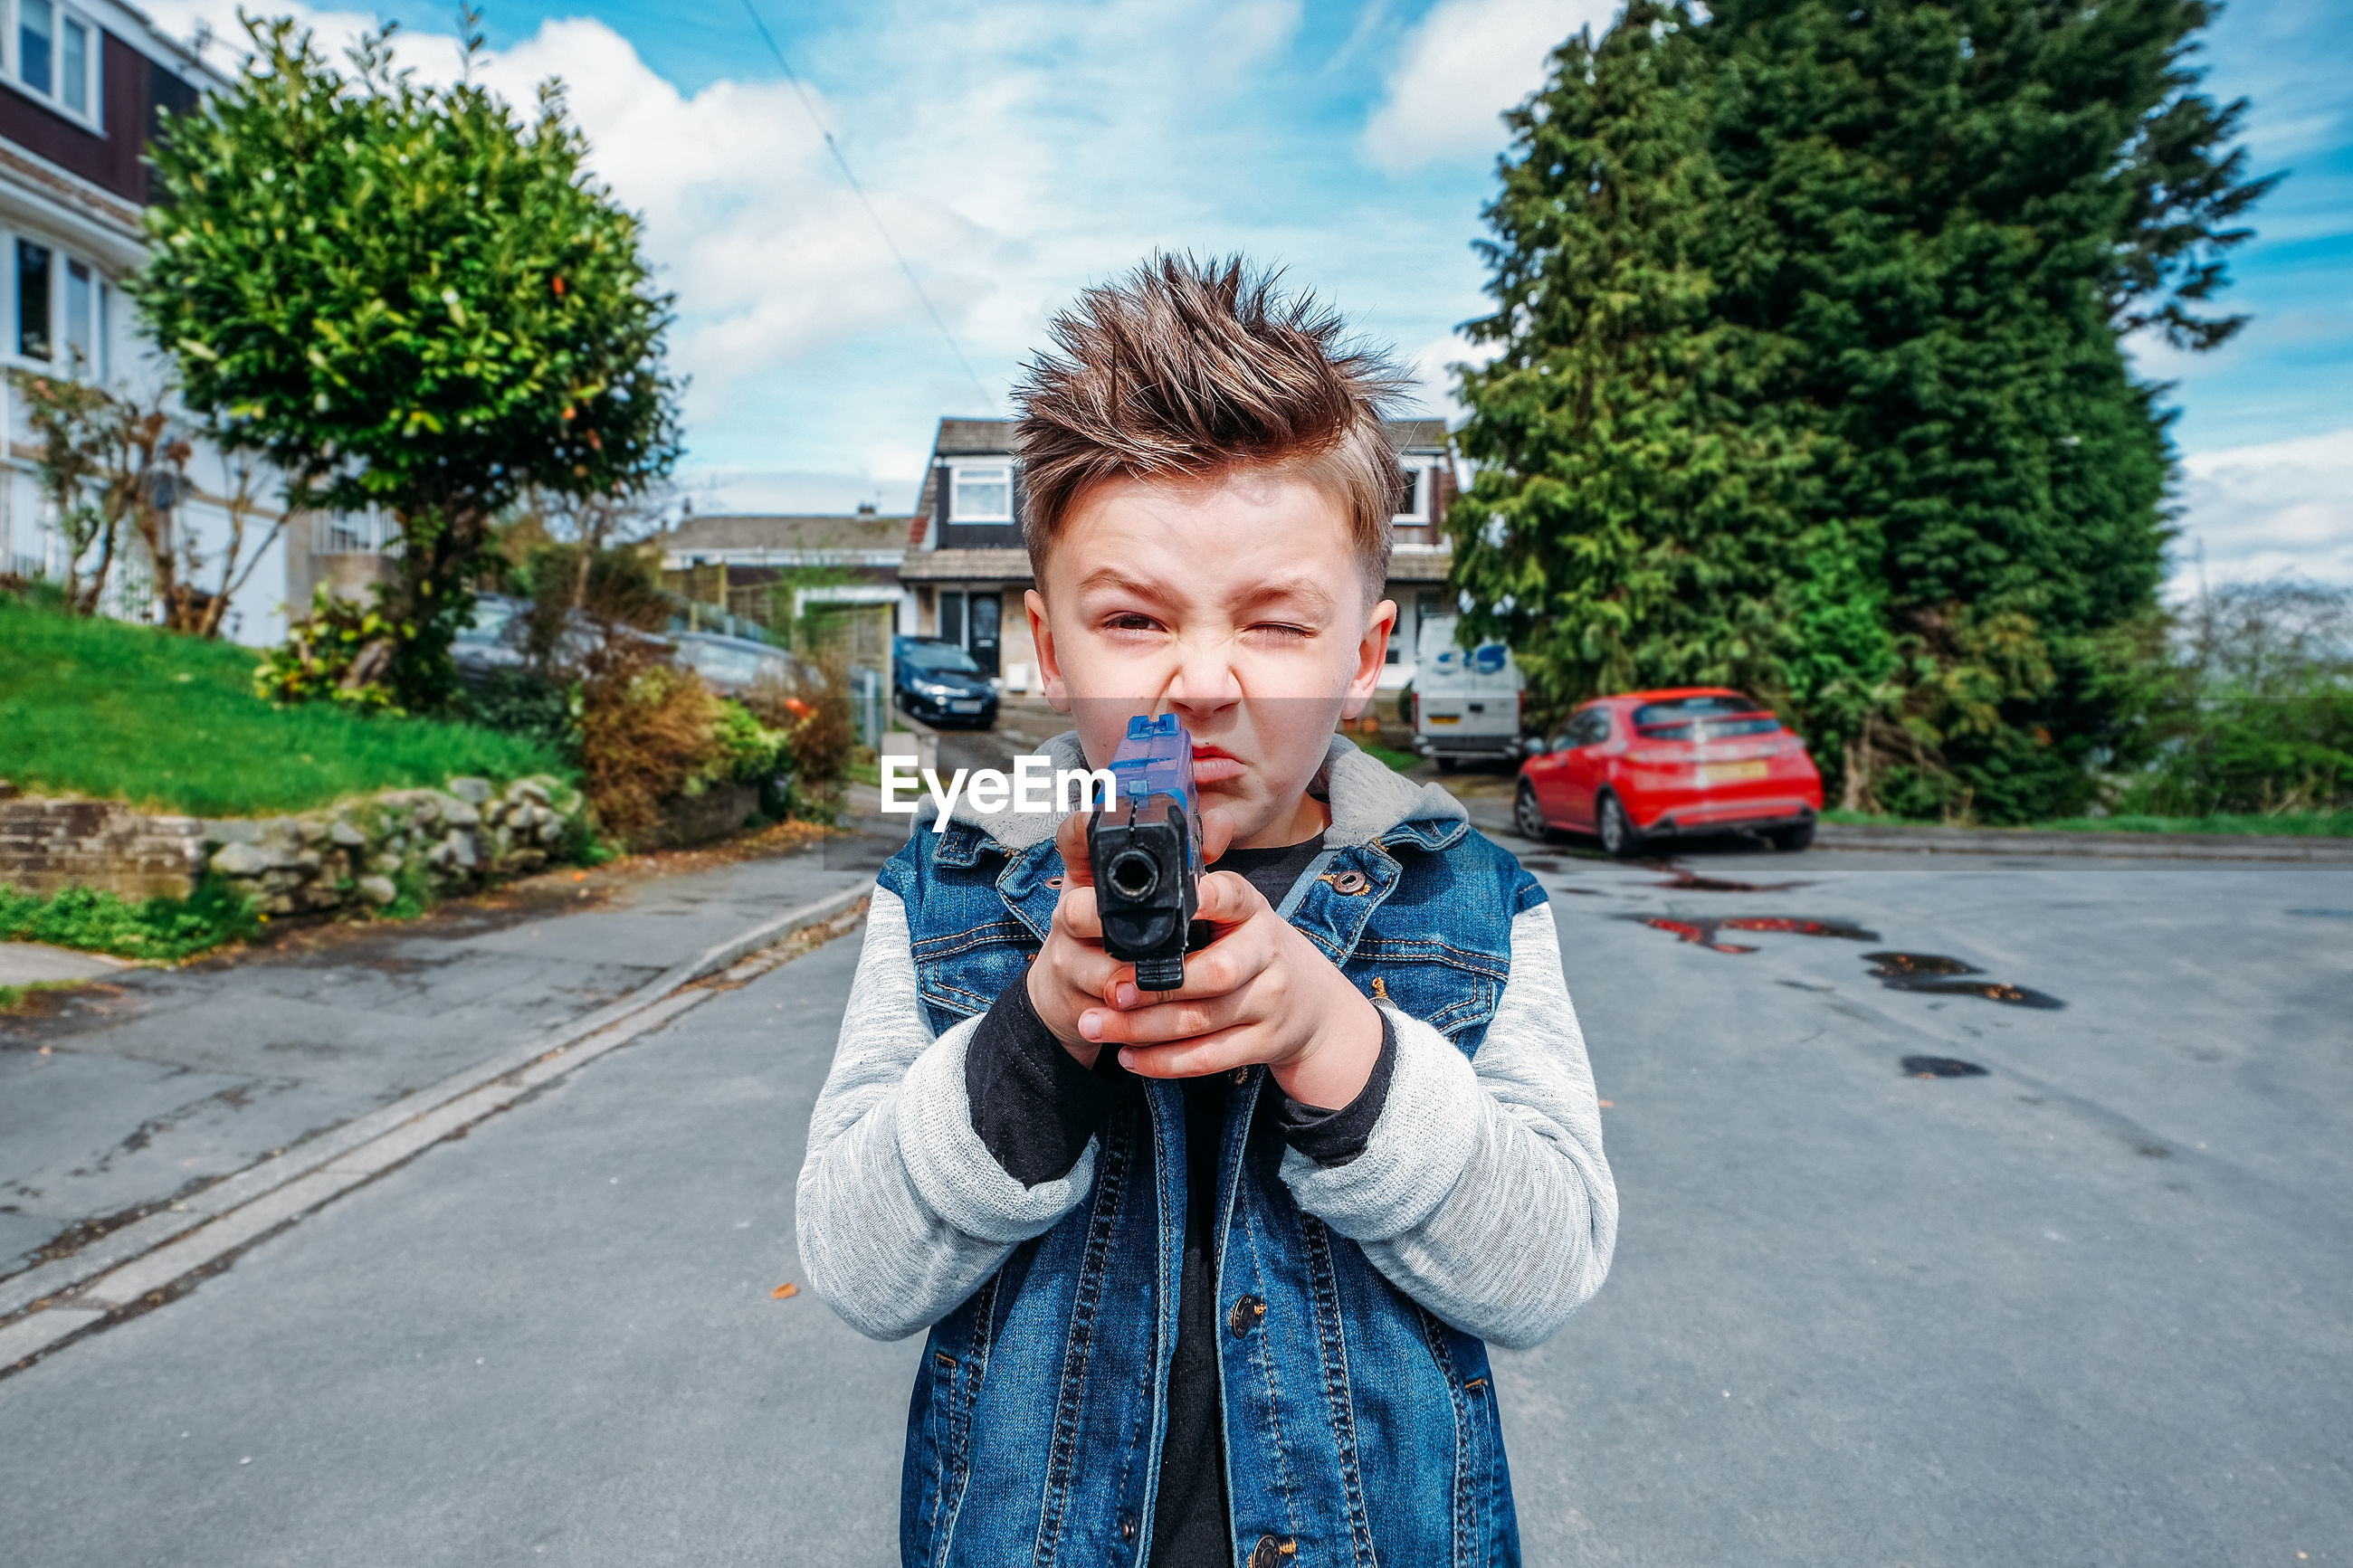 Portrait of boy shooting with toy handgun while standing on road